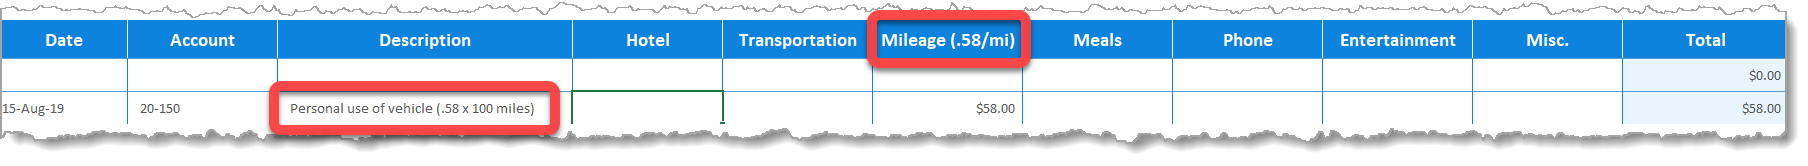 Expense Report Form Mileage